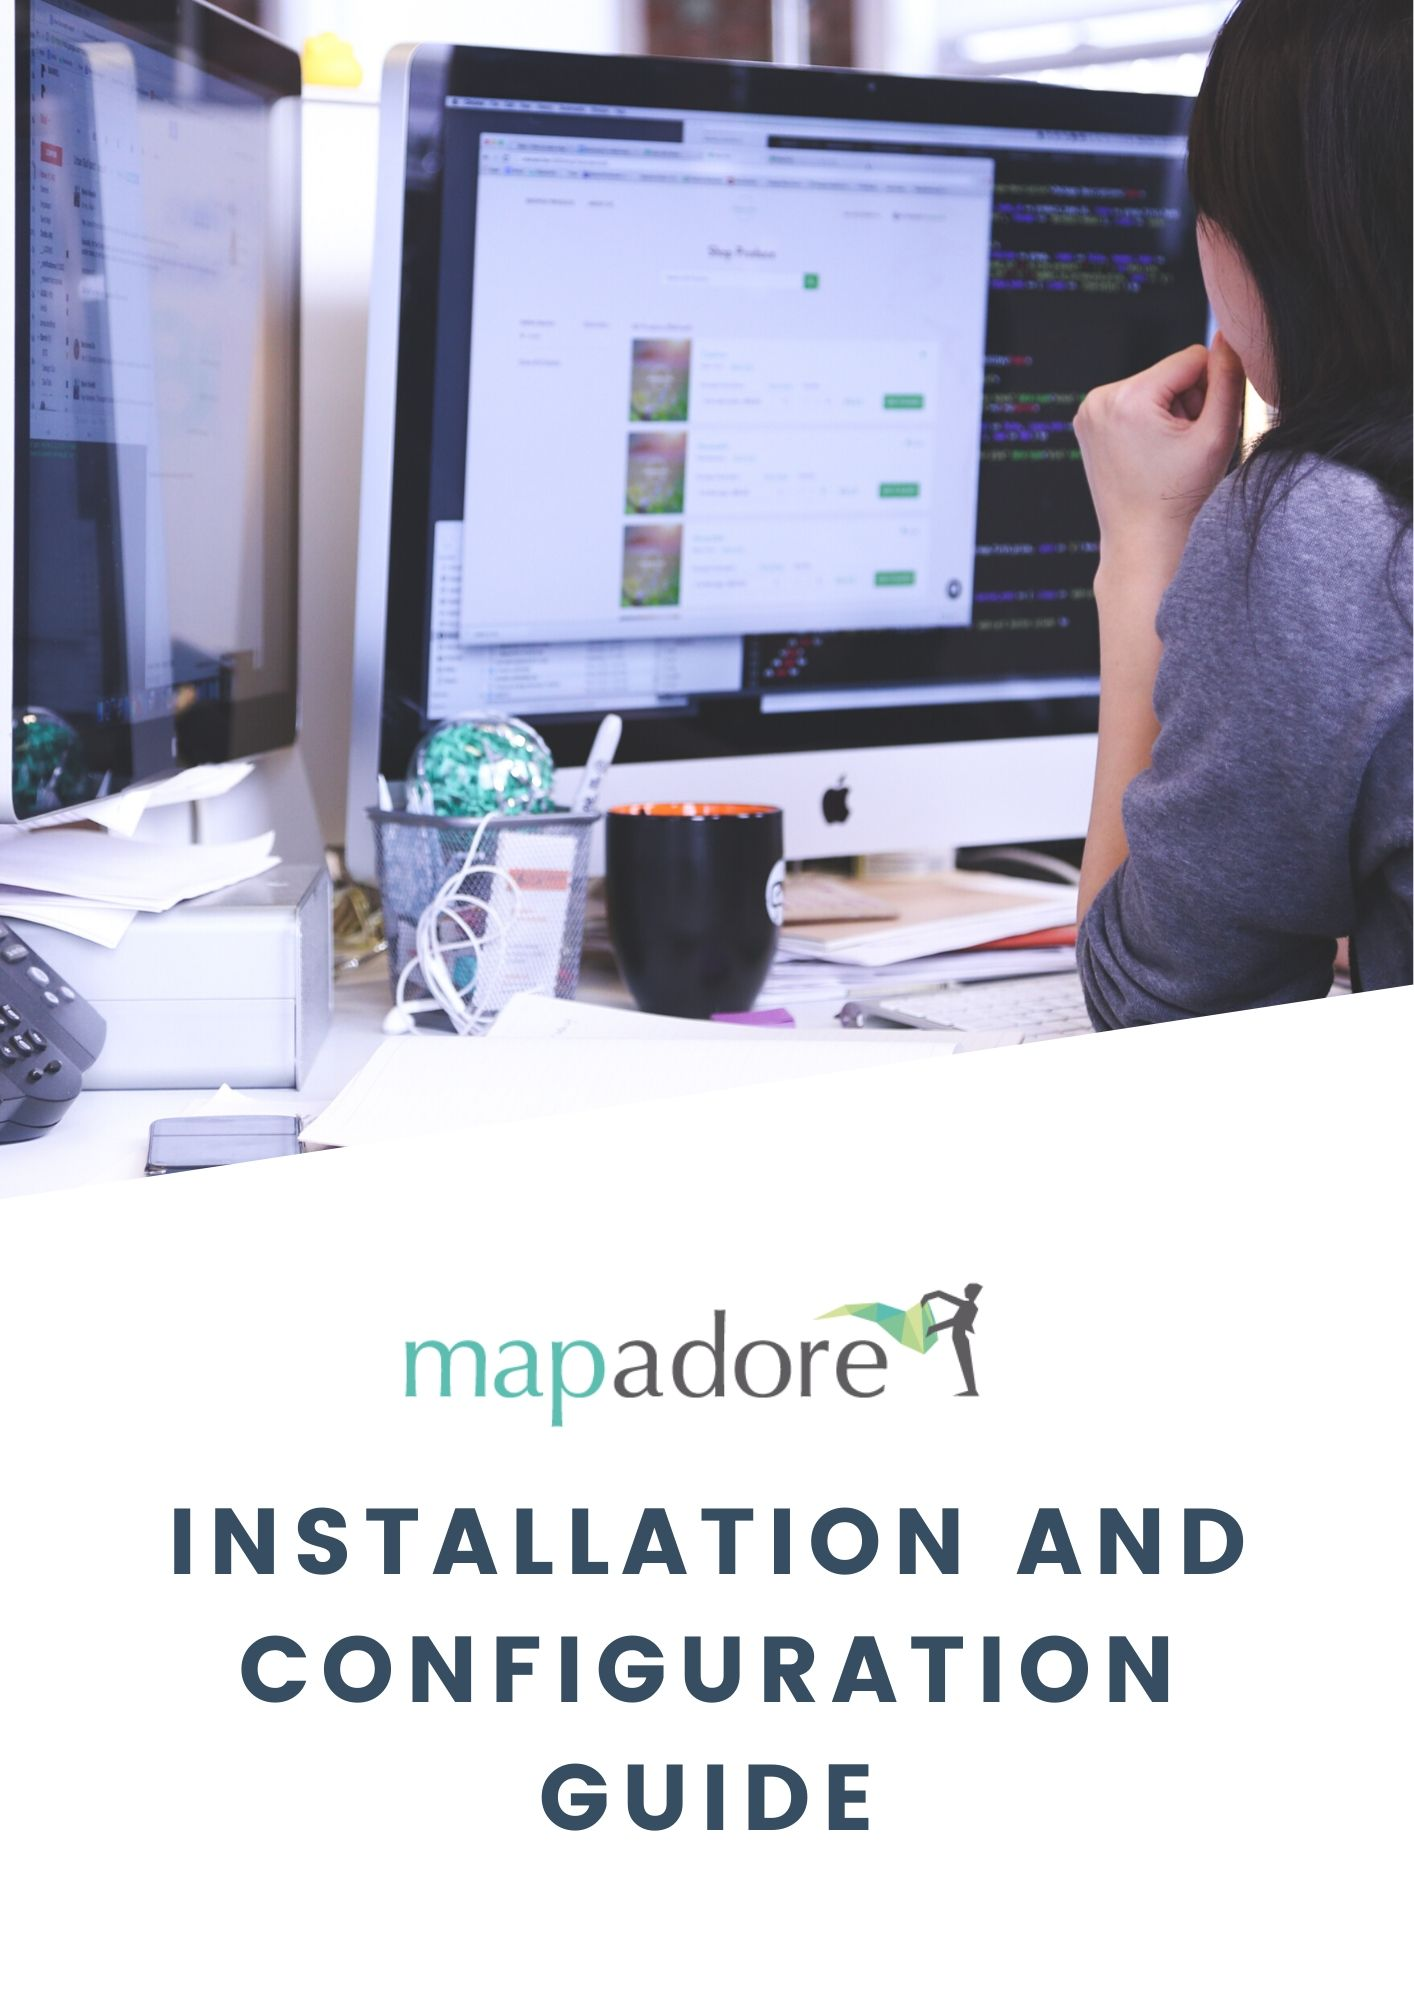 installation and configuration guide